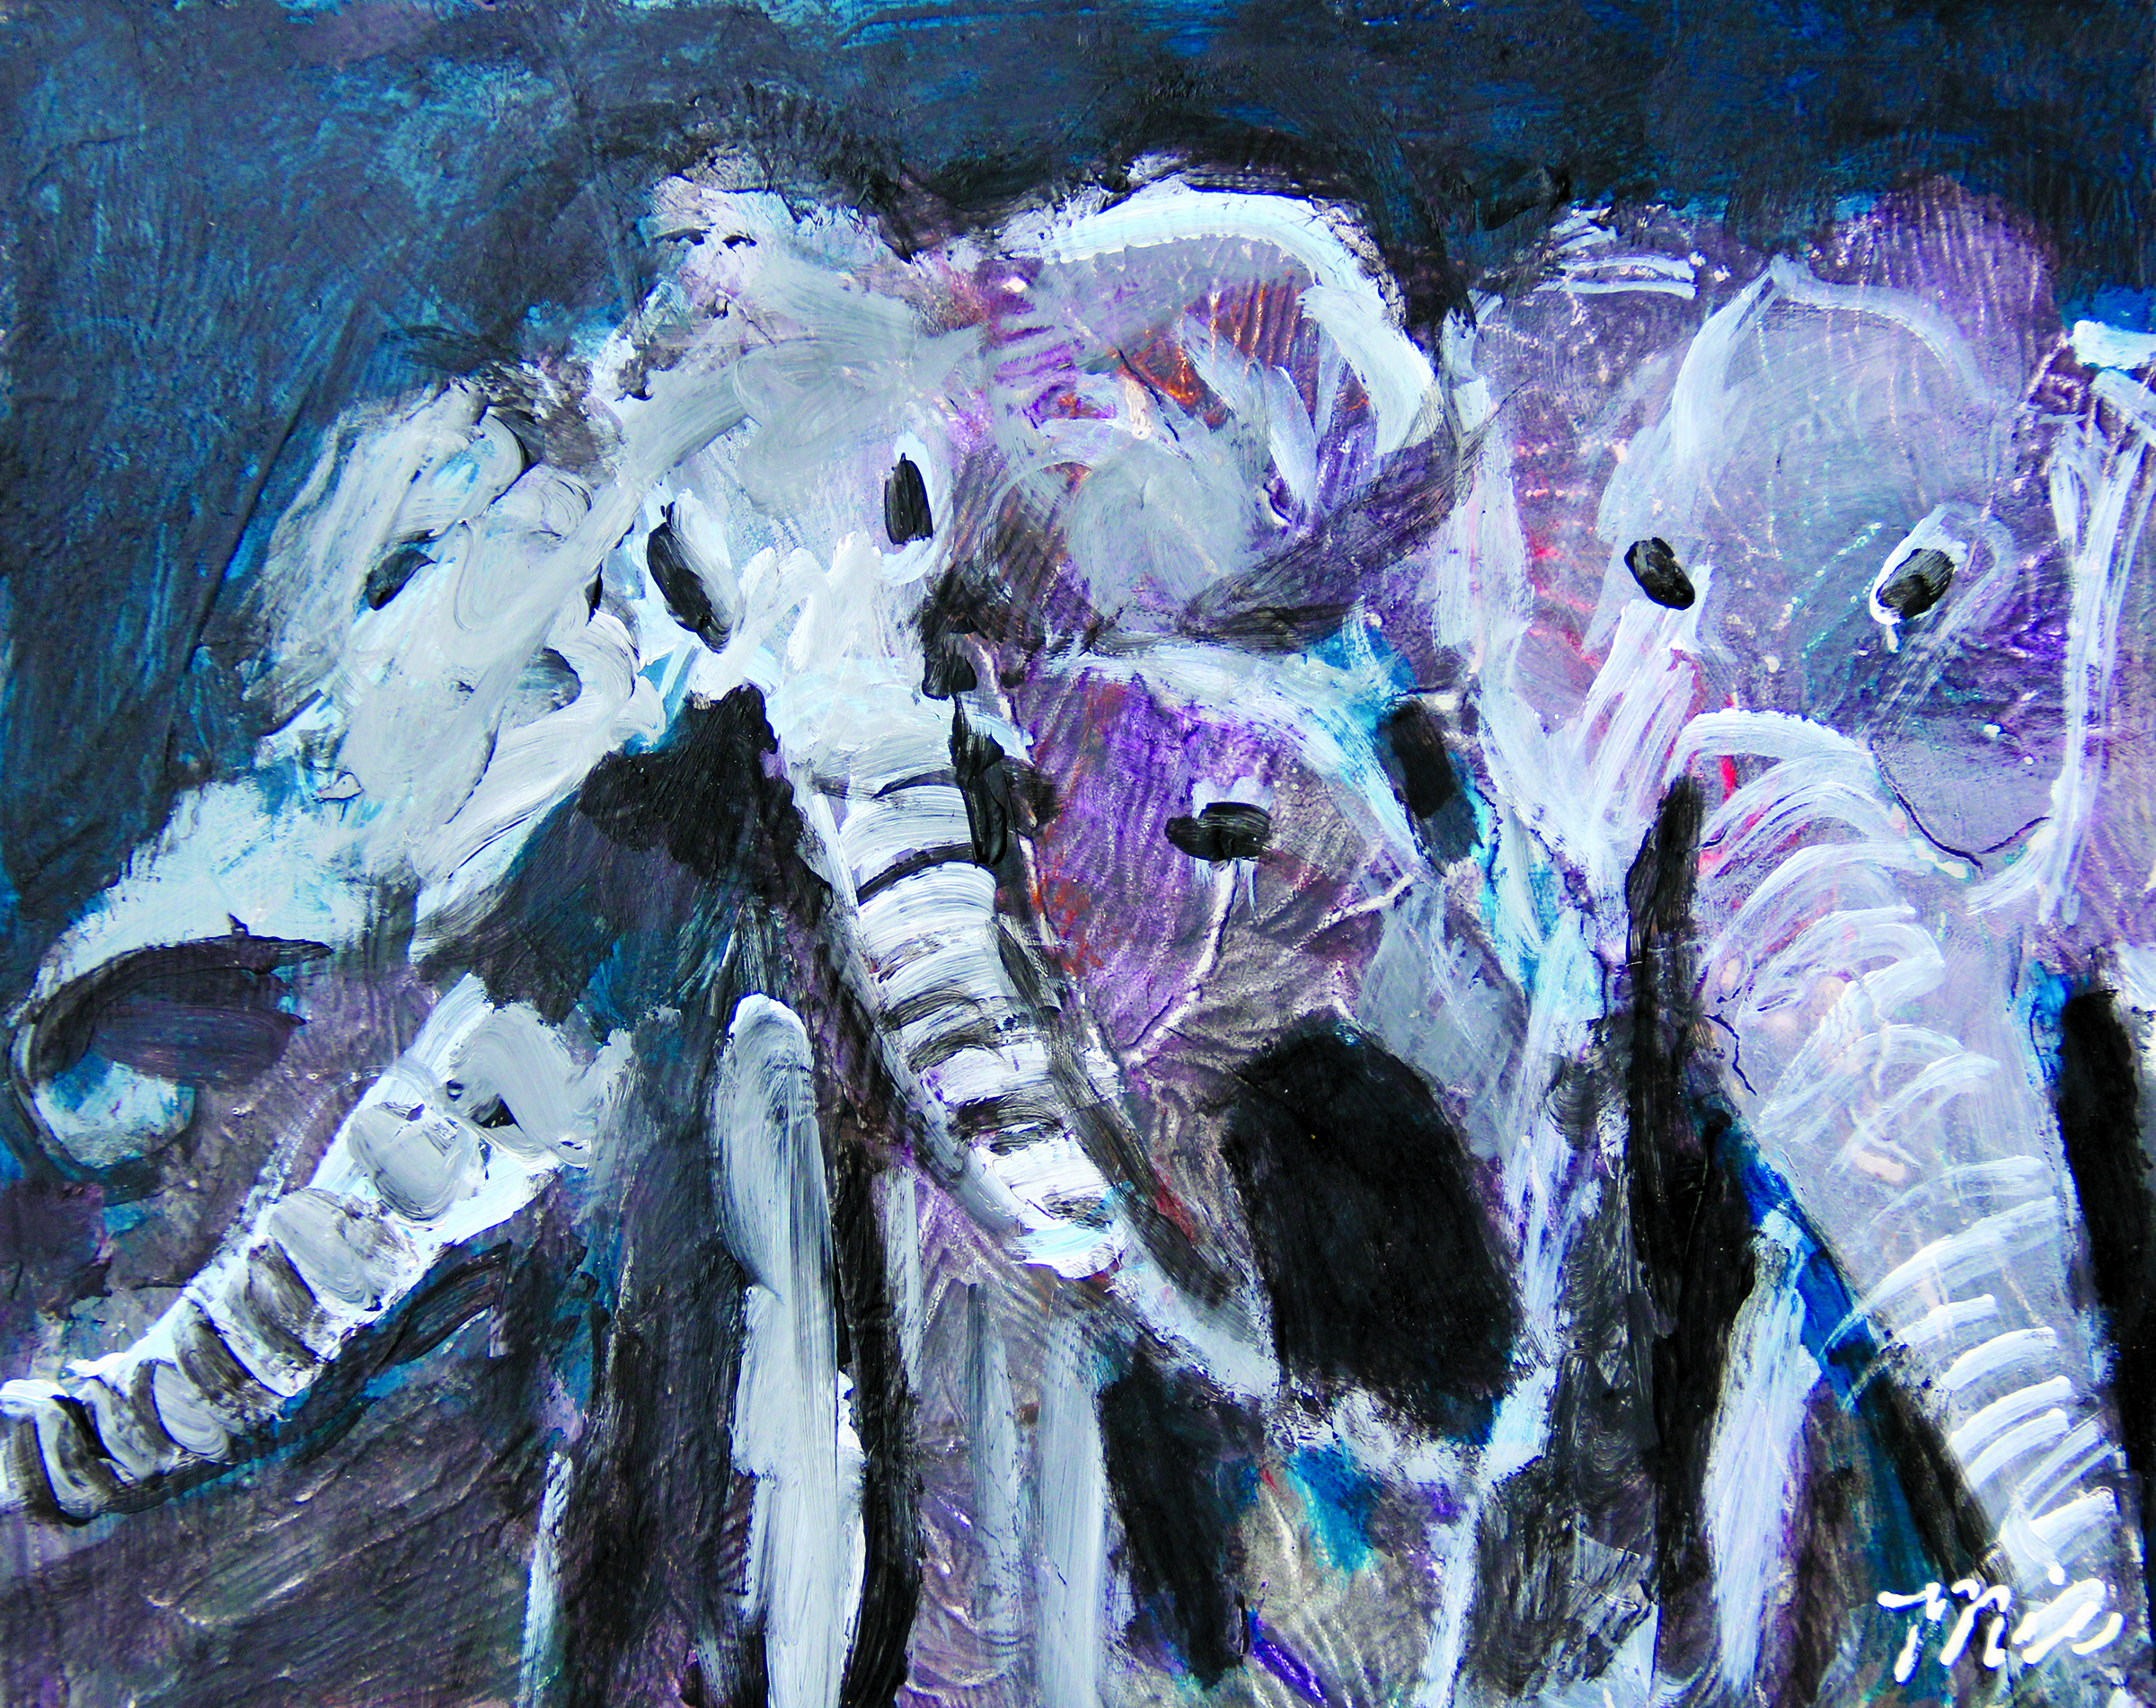 Pachyderms - Private collection Lorinda GreerGiclee Limited Edition and canvas prints are available. Please visit the prints gallery.